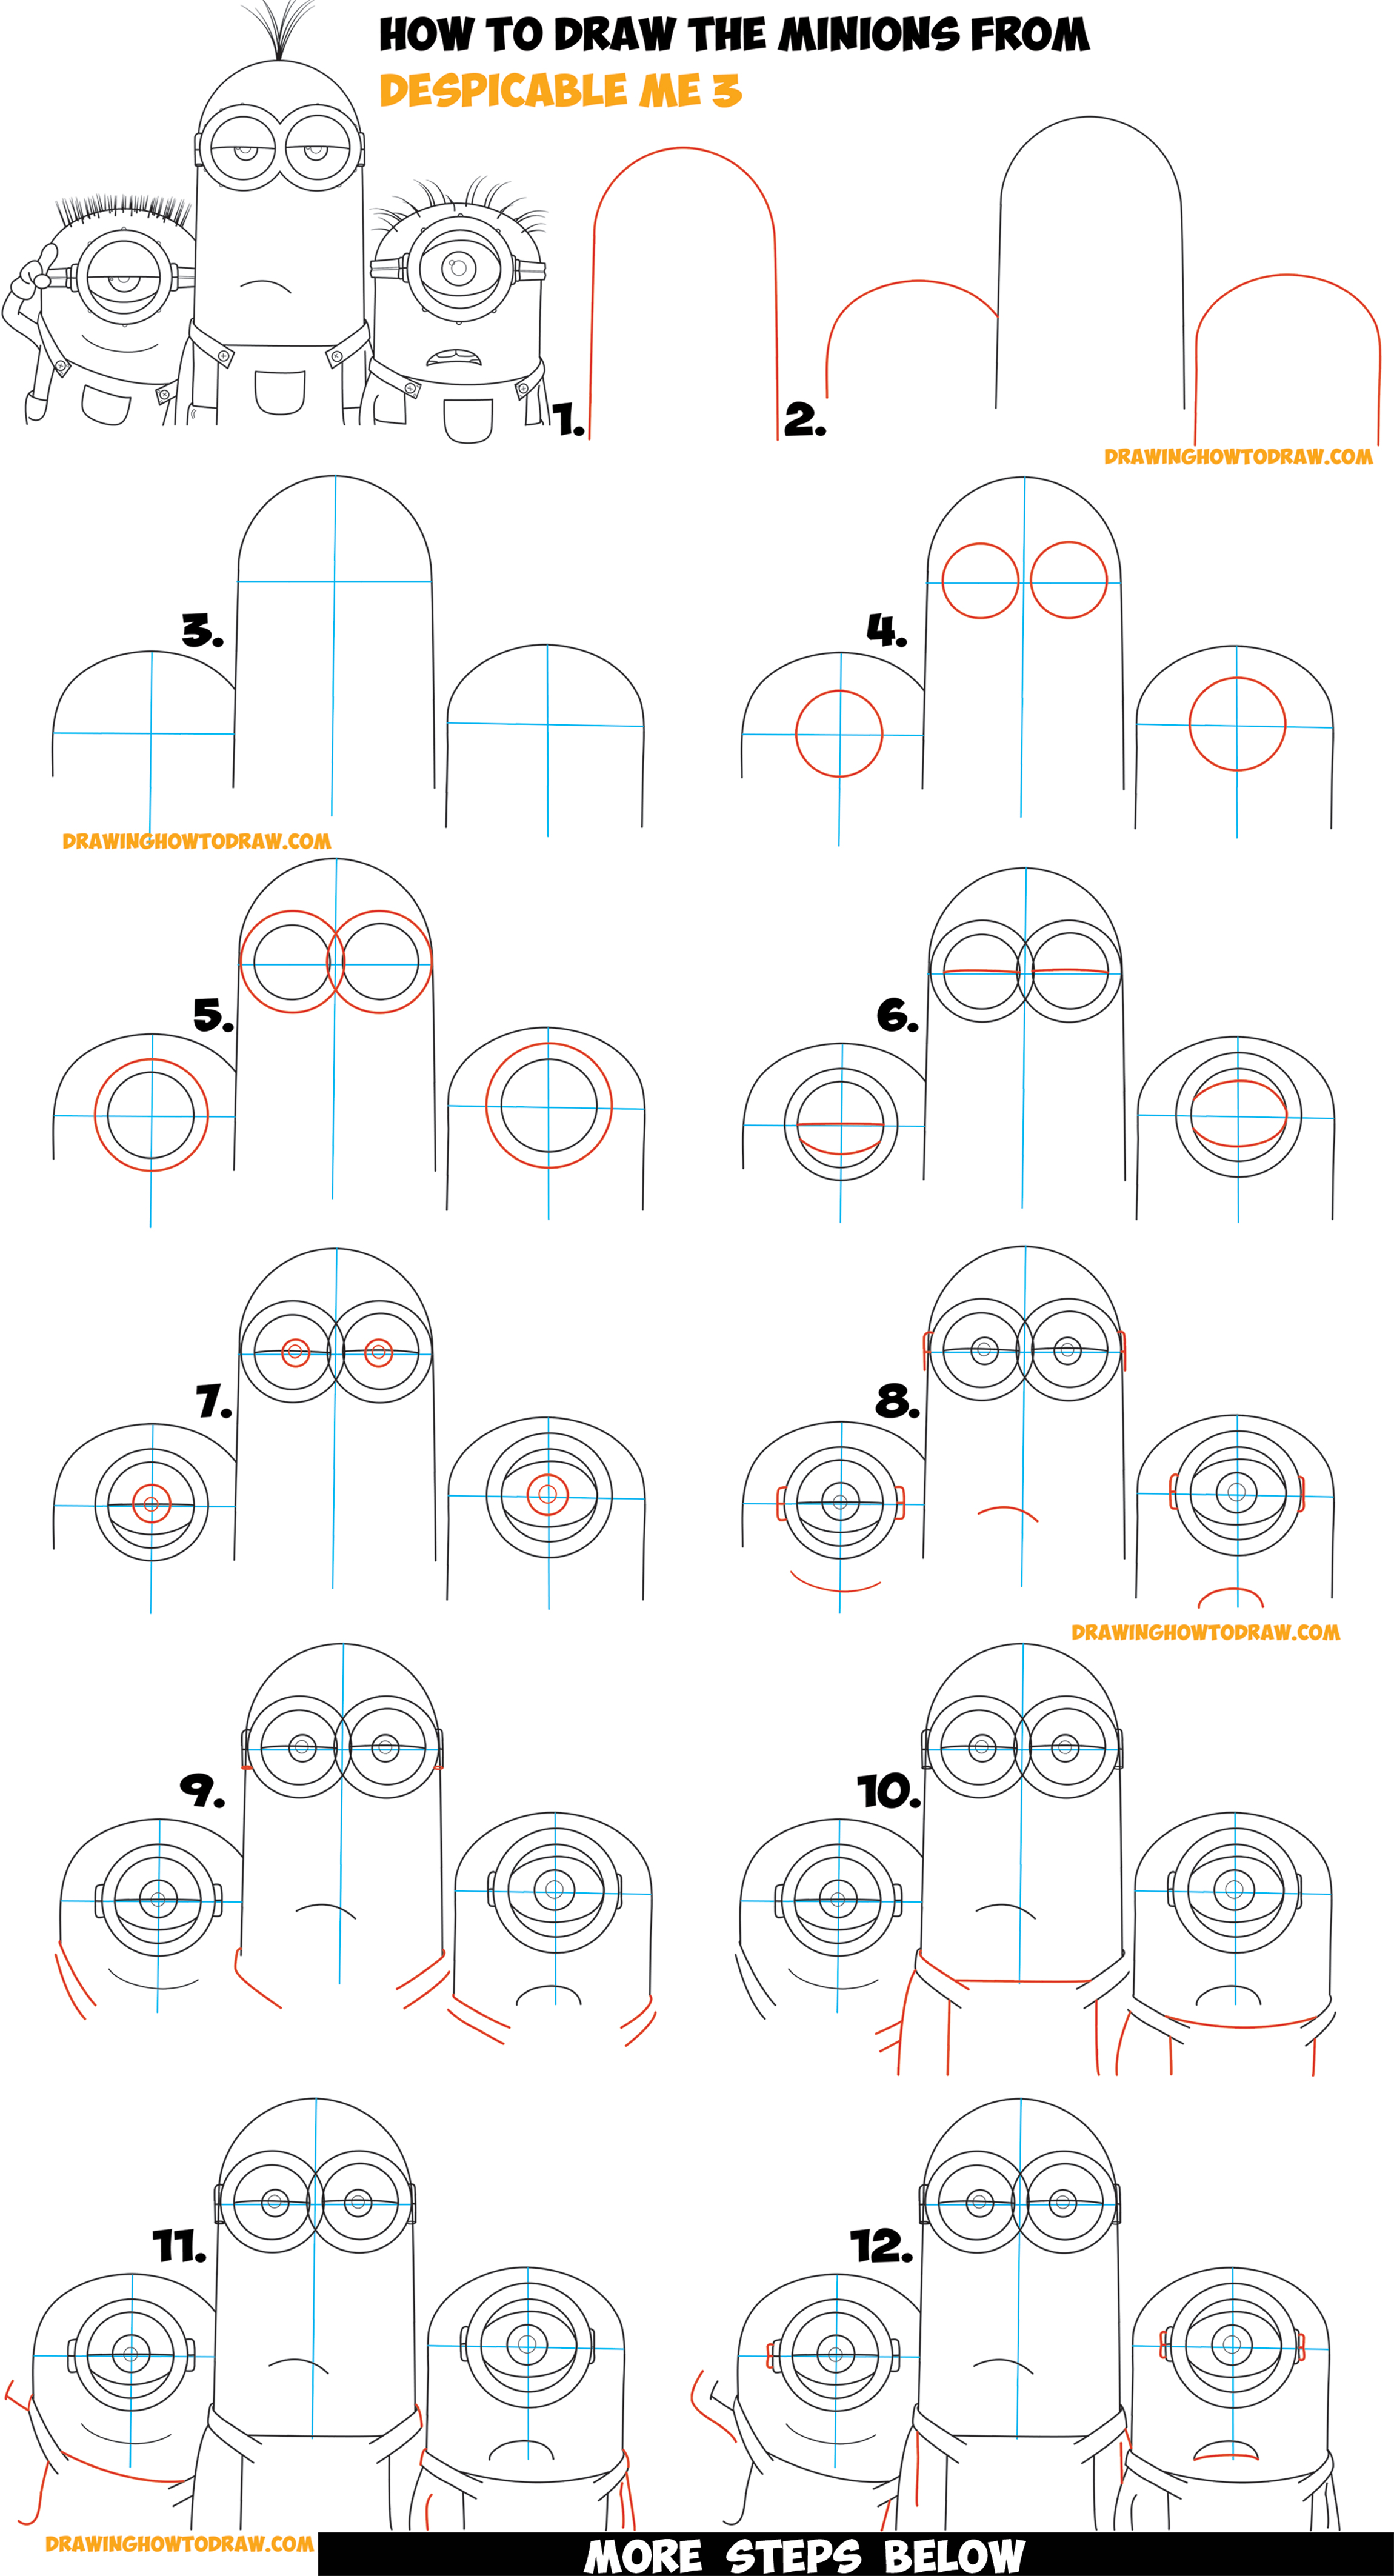 How To Draw The Minions From Despicable Me 3 Easy Step By Step